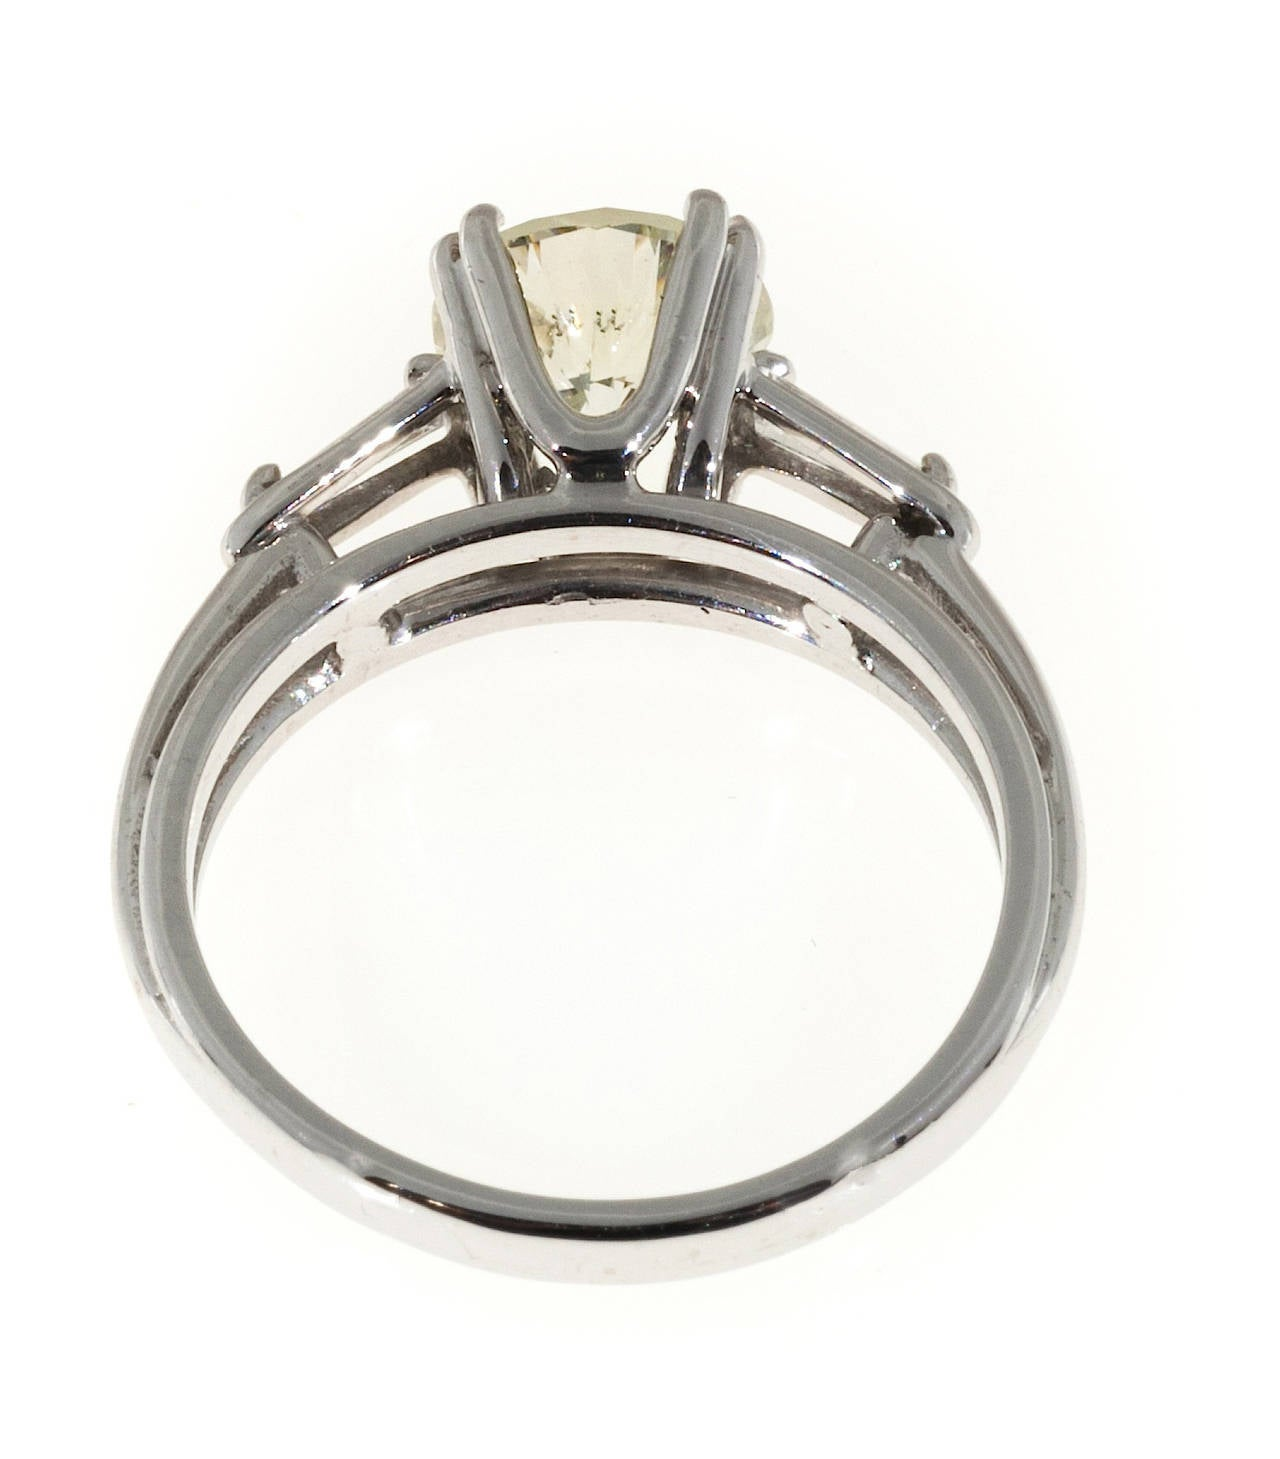 European ideal cut diamond baguette gold wire setting ring at 1stdibs